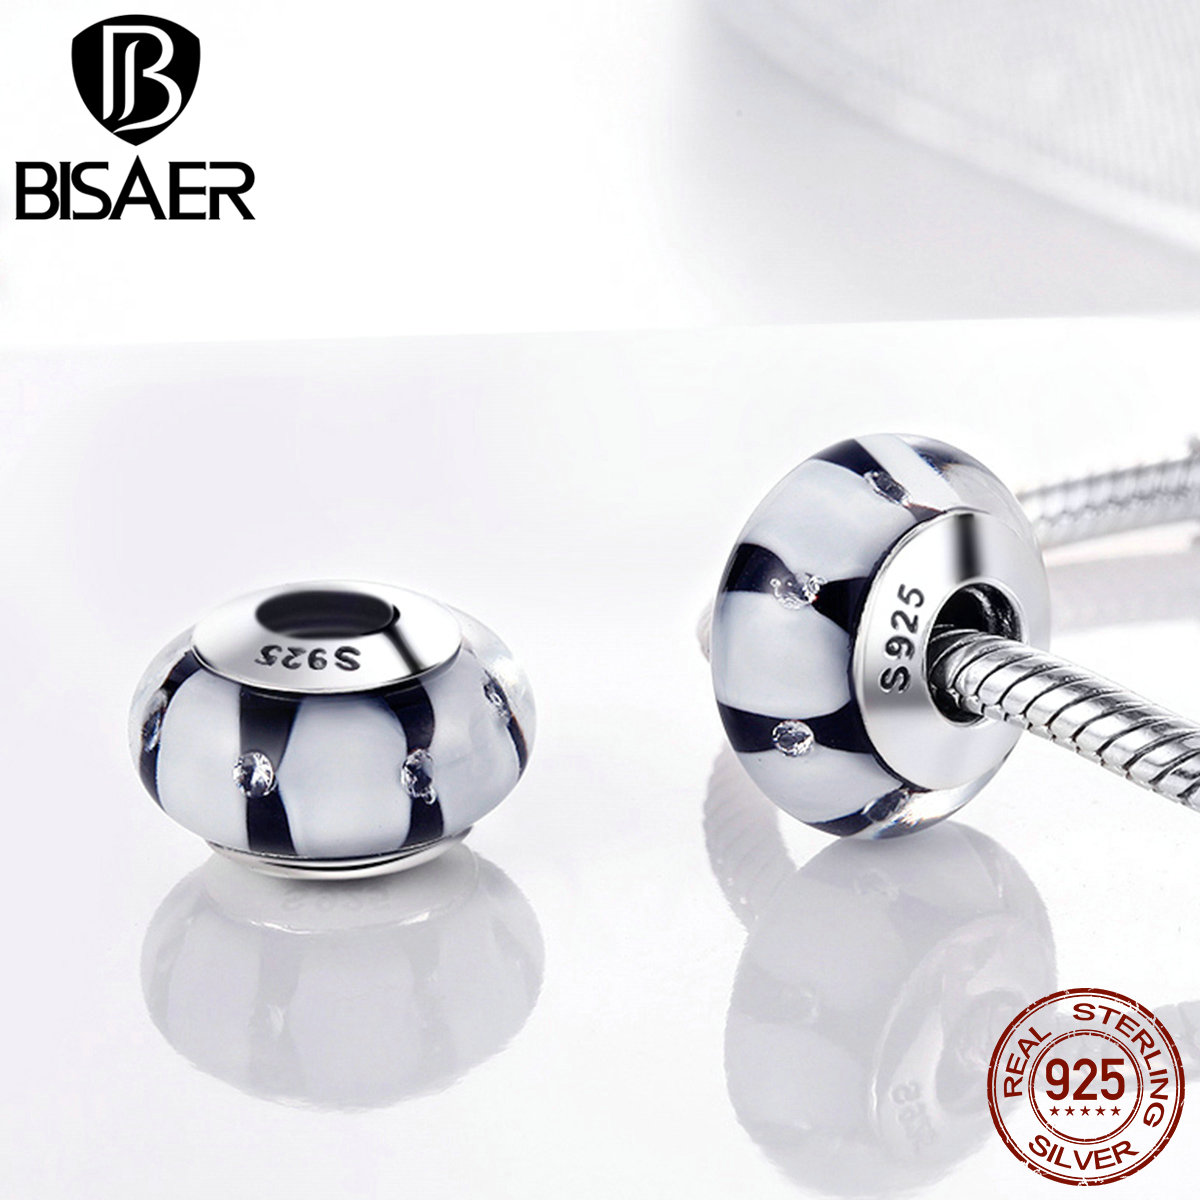 BISAER NEW Arrival 925 Sterling Silver Black & White Stripe S925 Glass Beads Fit Original Charms Bracelets Women Jewelry Z050